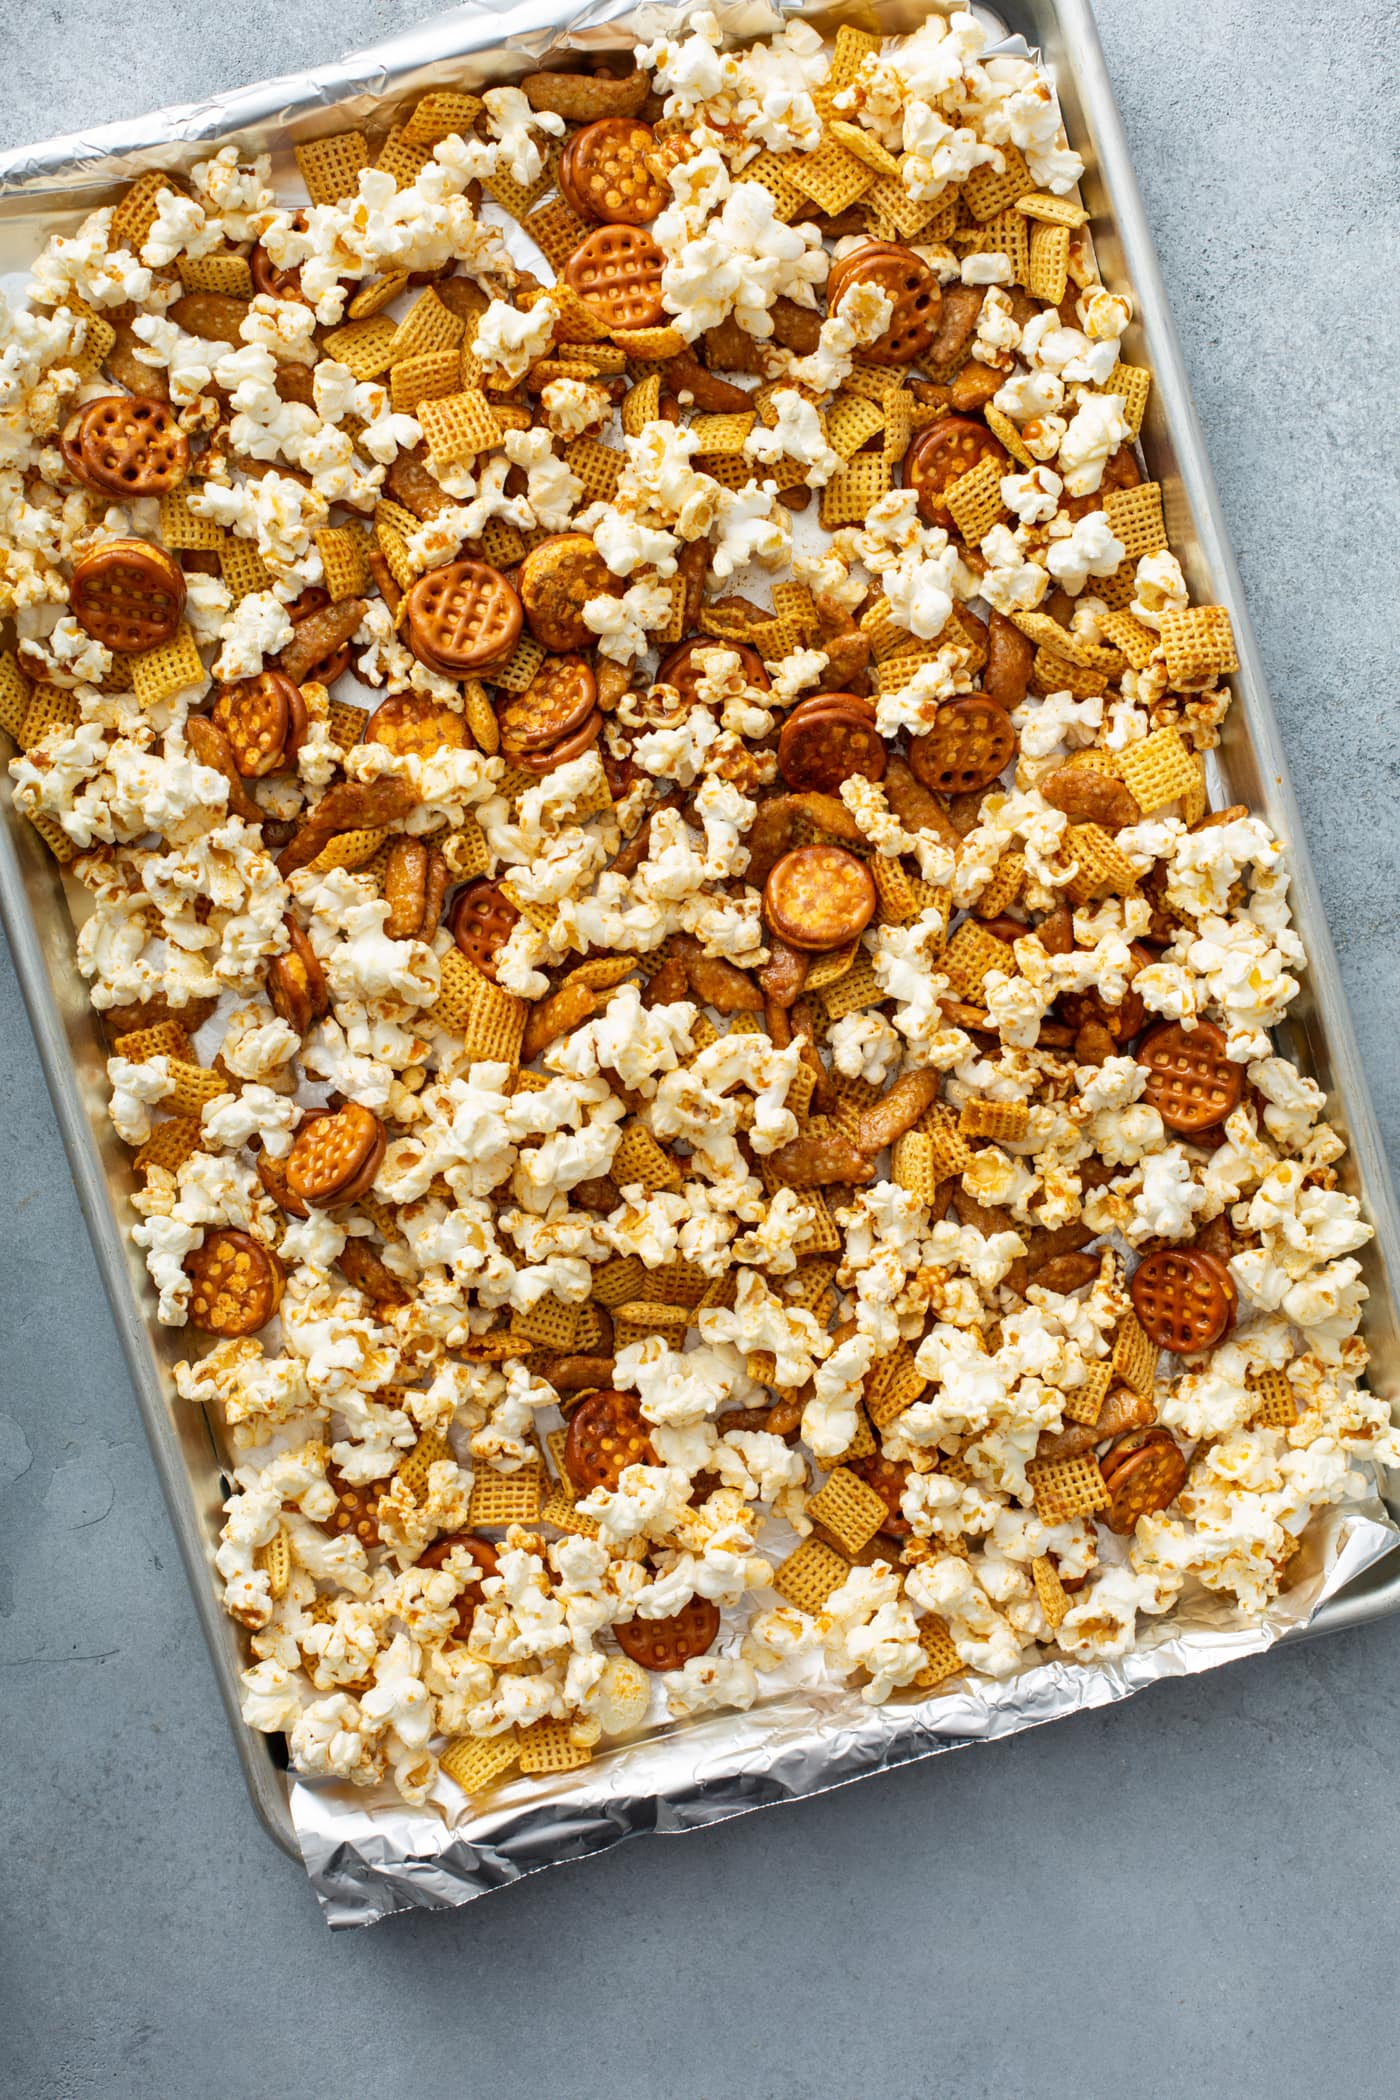 A baking sheet filled with popcorn, chex, pretzels, and sesame sticks.